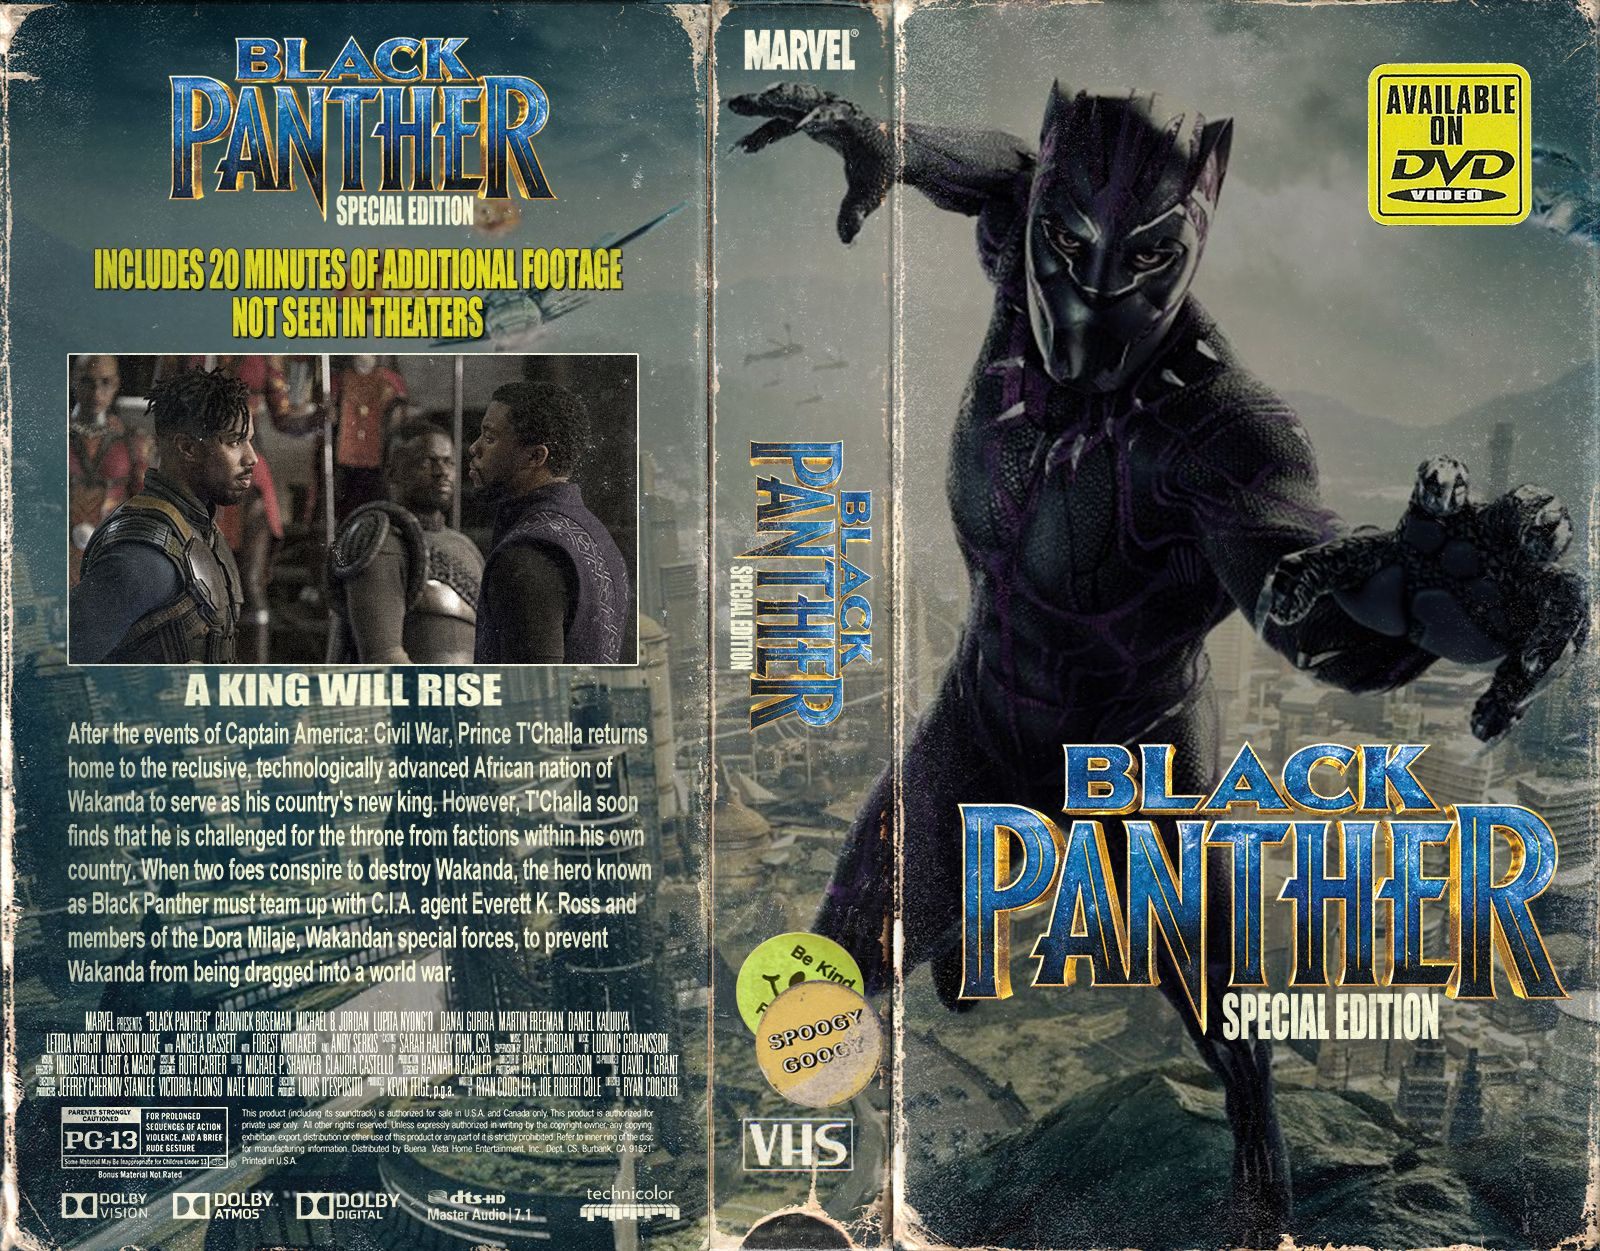 Black Panther Vhs Cover Art